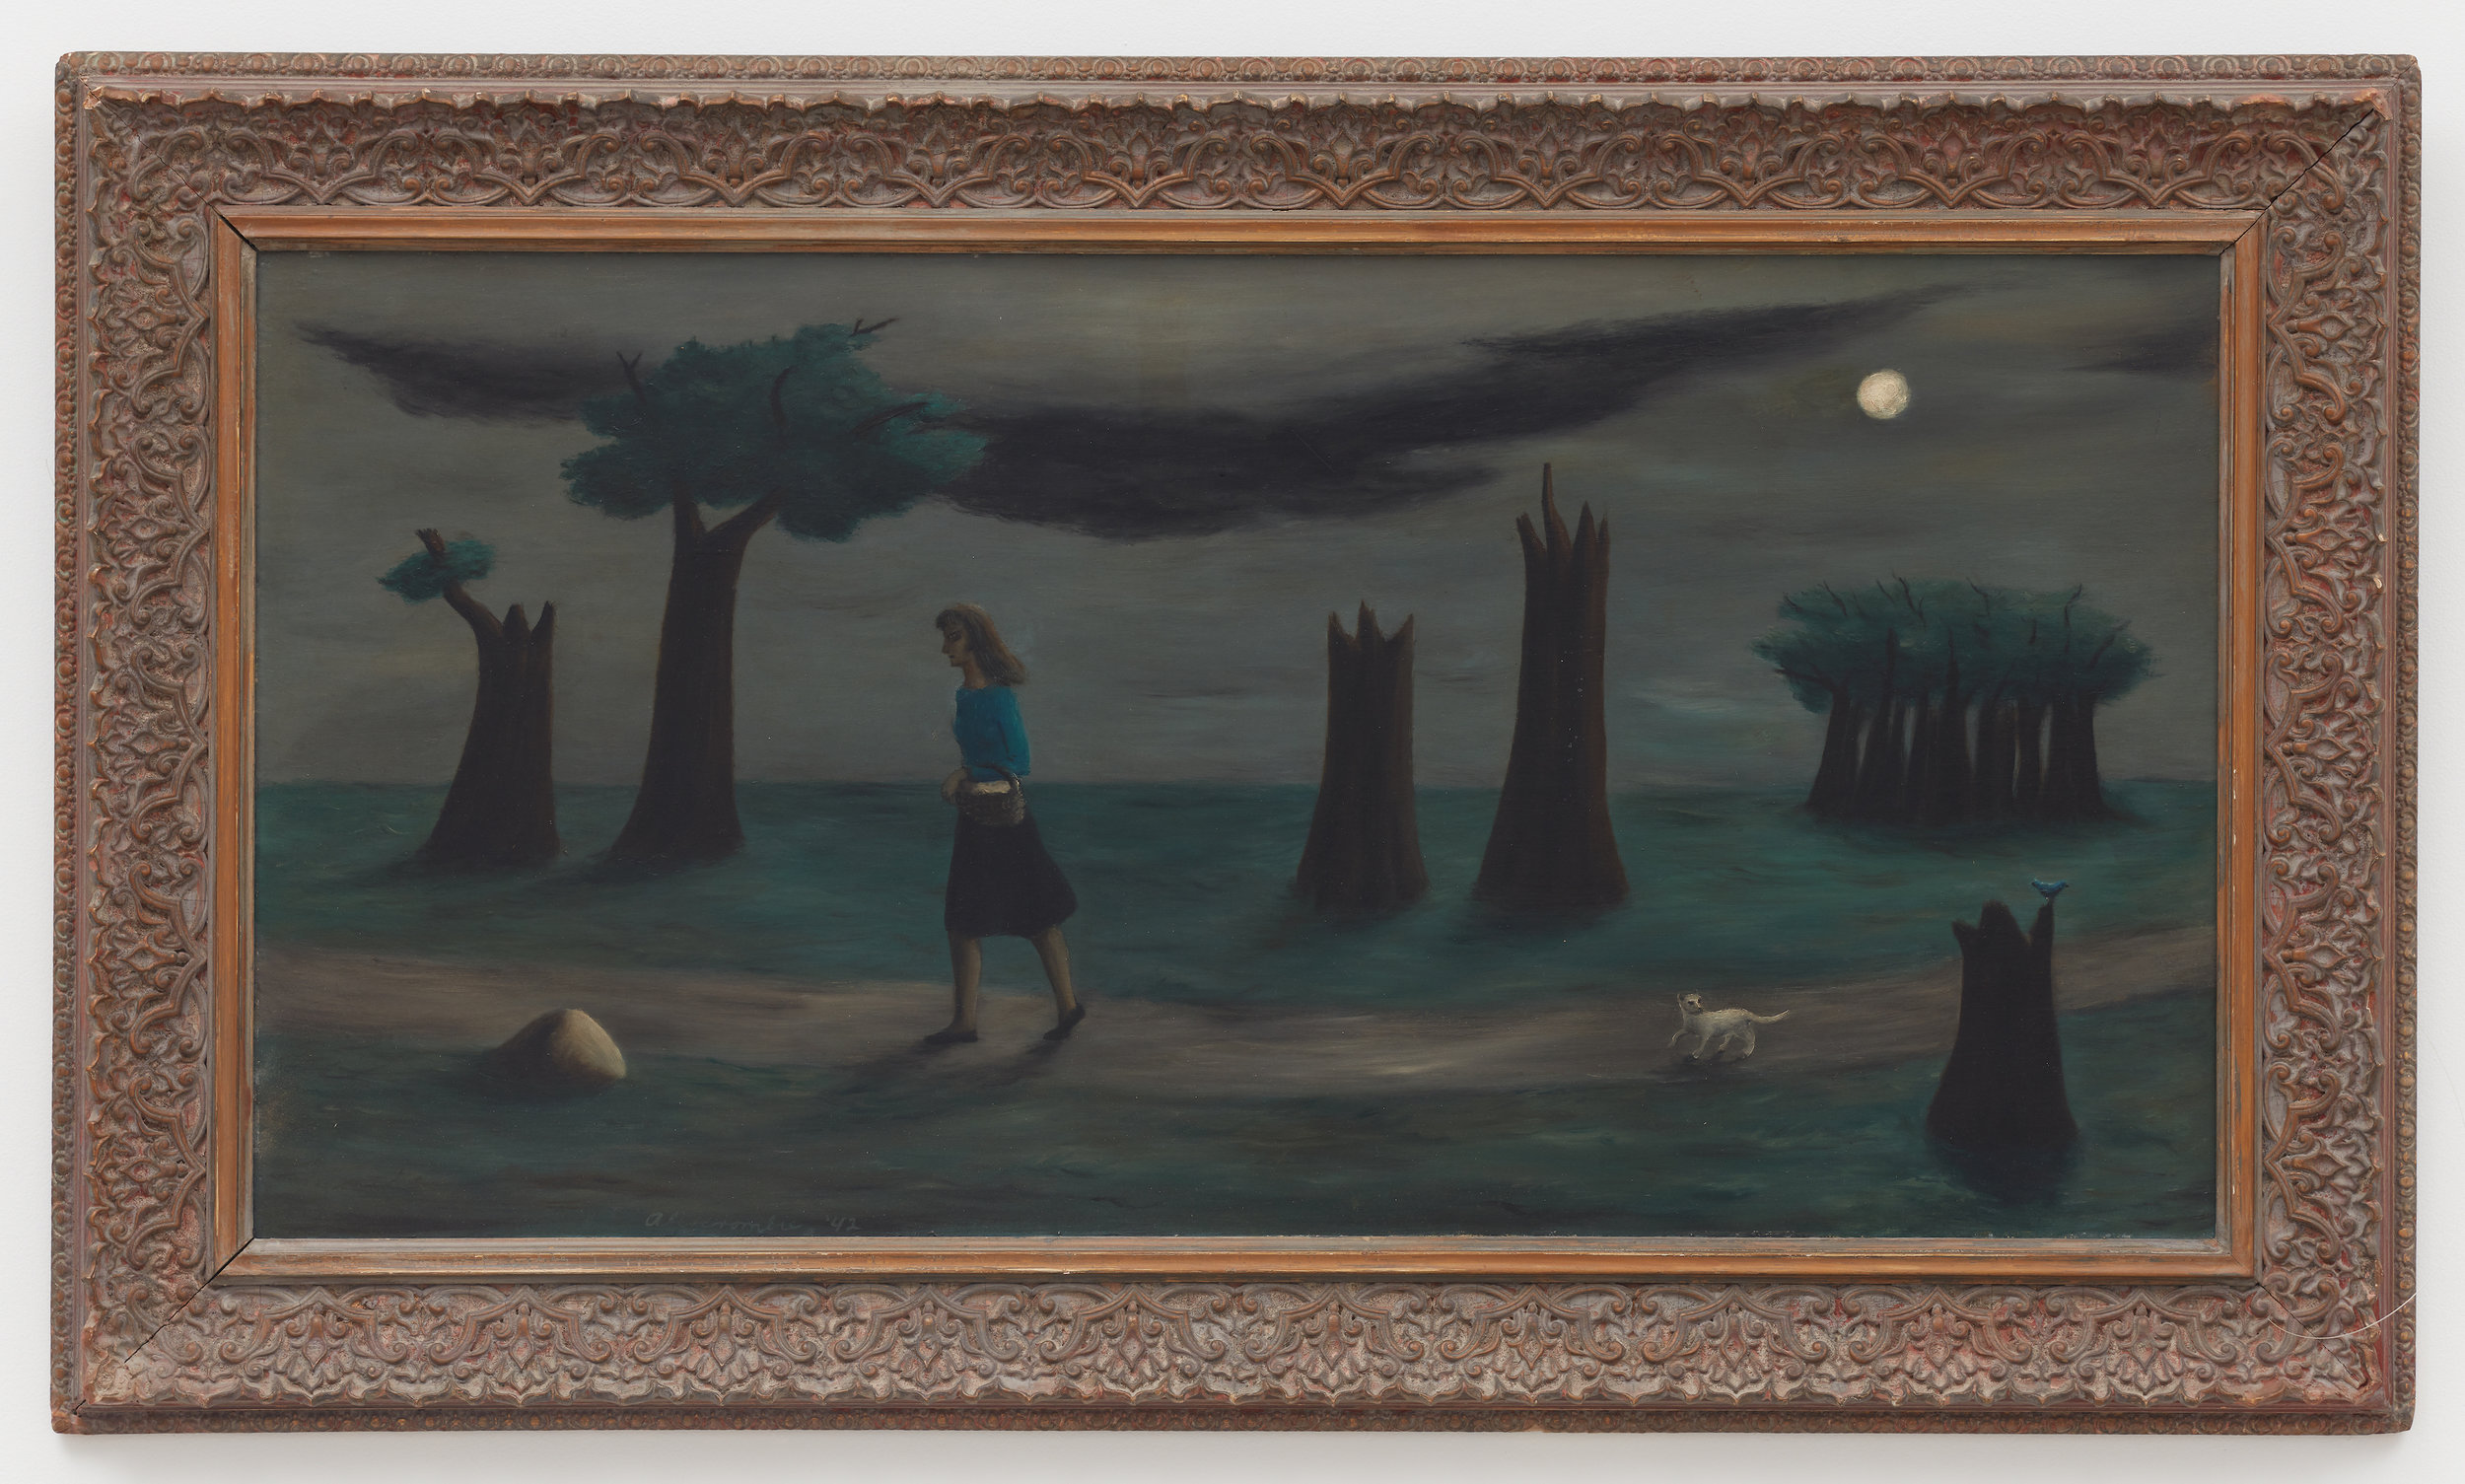 Solitude , 1942, Oil on canvas, 20 1/2 × 40 3/4 inches (unframed); 28 1/2 × 48 inches (framed). Collection of Laura and Gary Maurer.